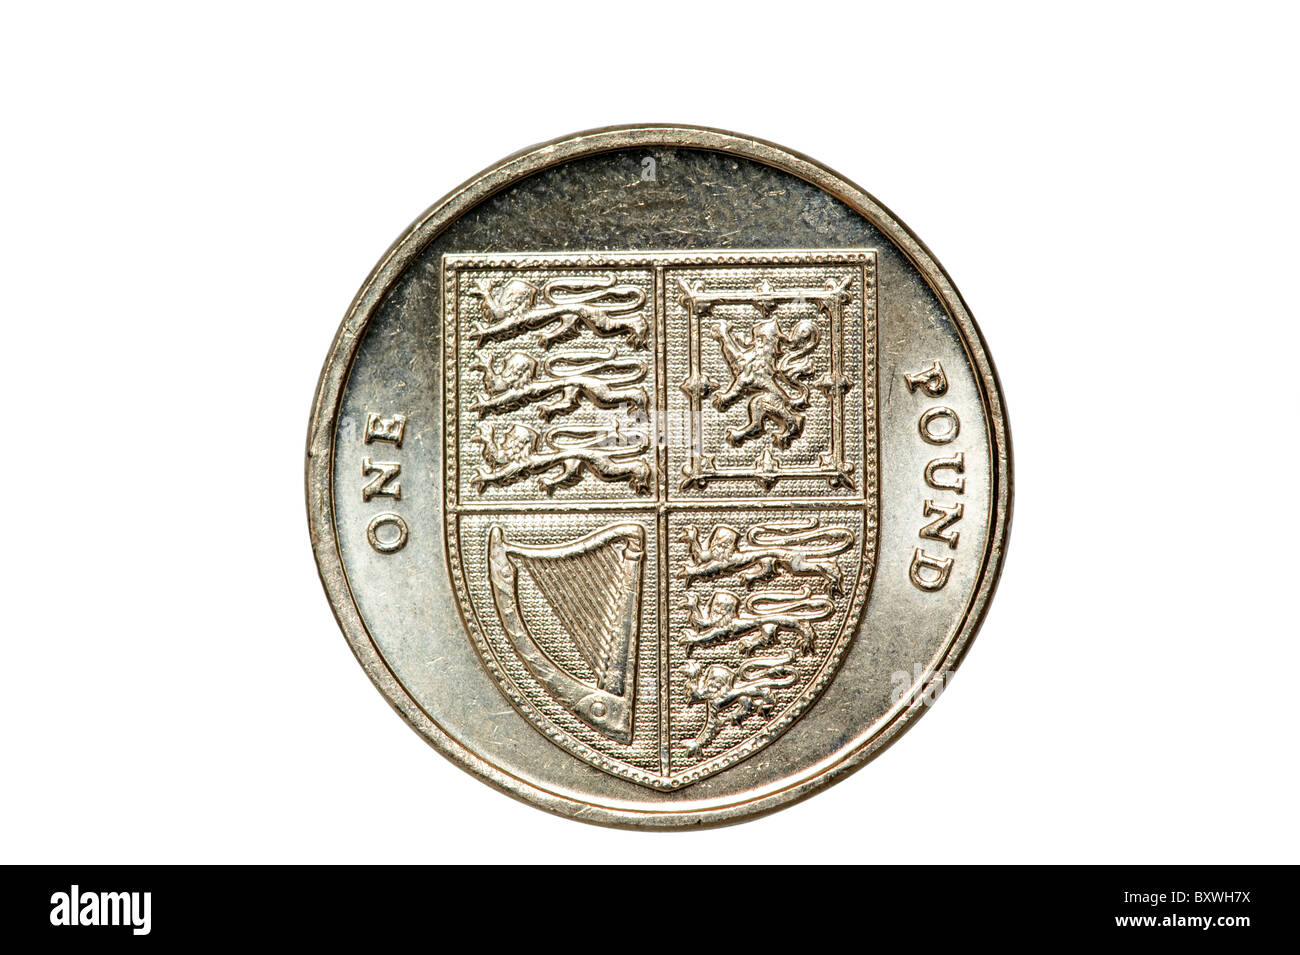 Close up of a 2009 British sterling one pound coin.  Editorial use only - Stock Image